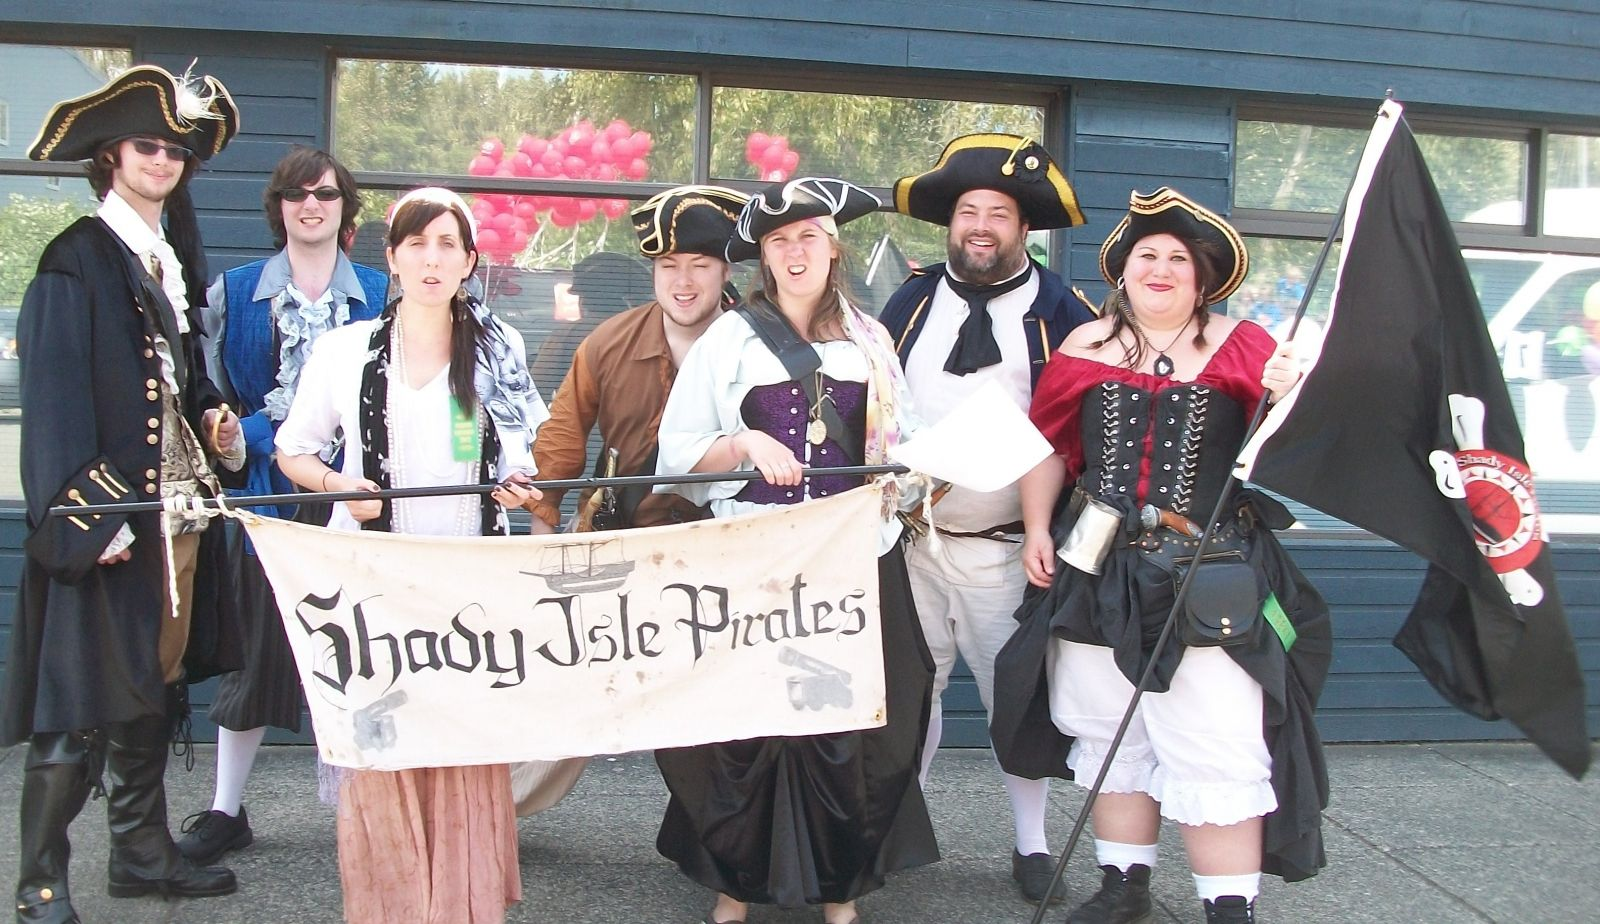 Shady Isle Pirates May Days Parade